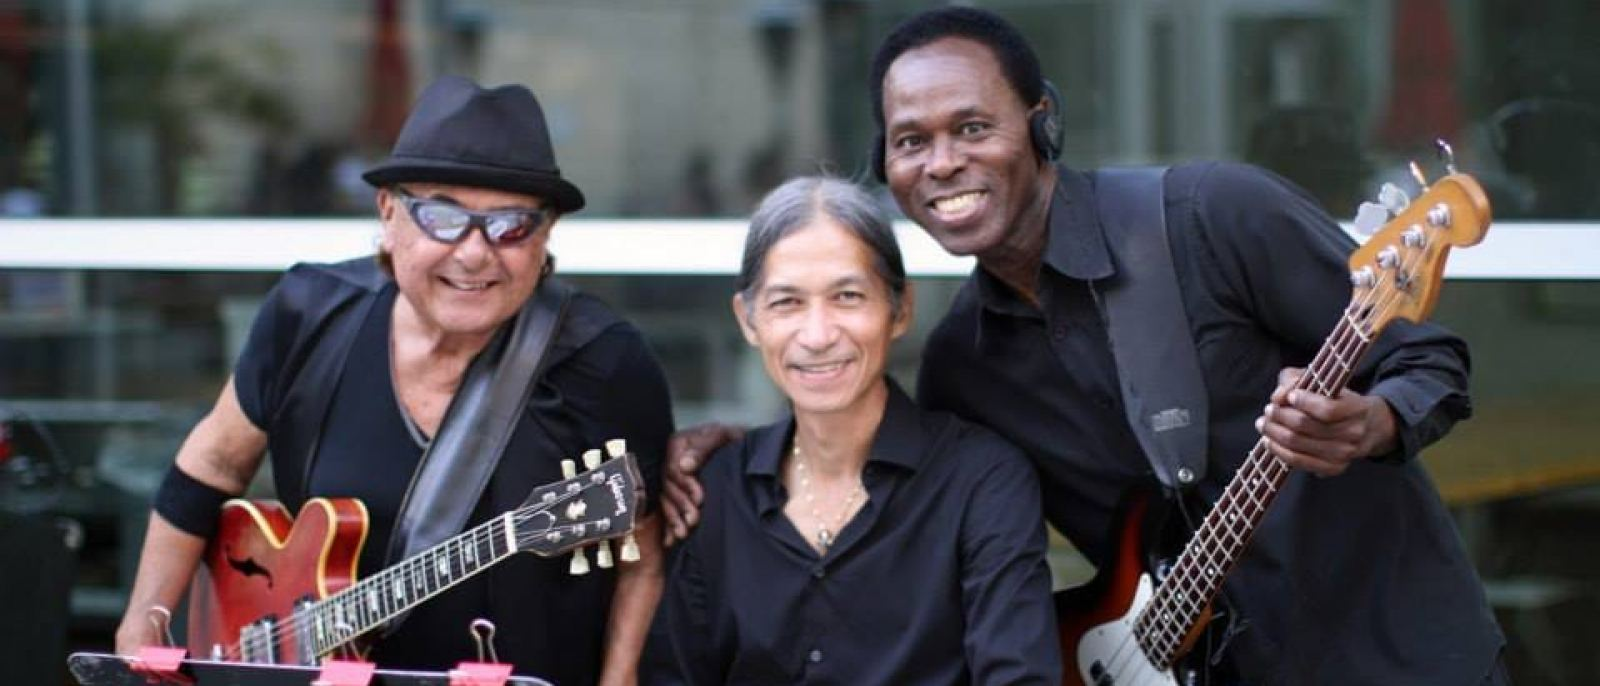 Gregg Young & the 2nd Street Band at Arclight Hollywood